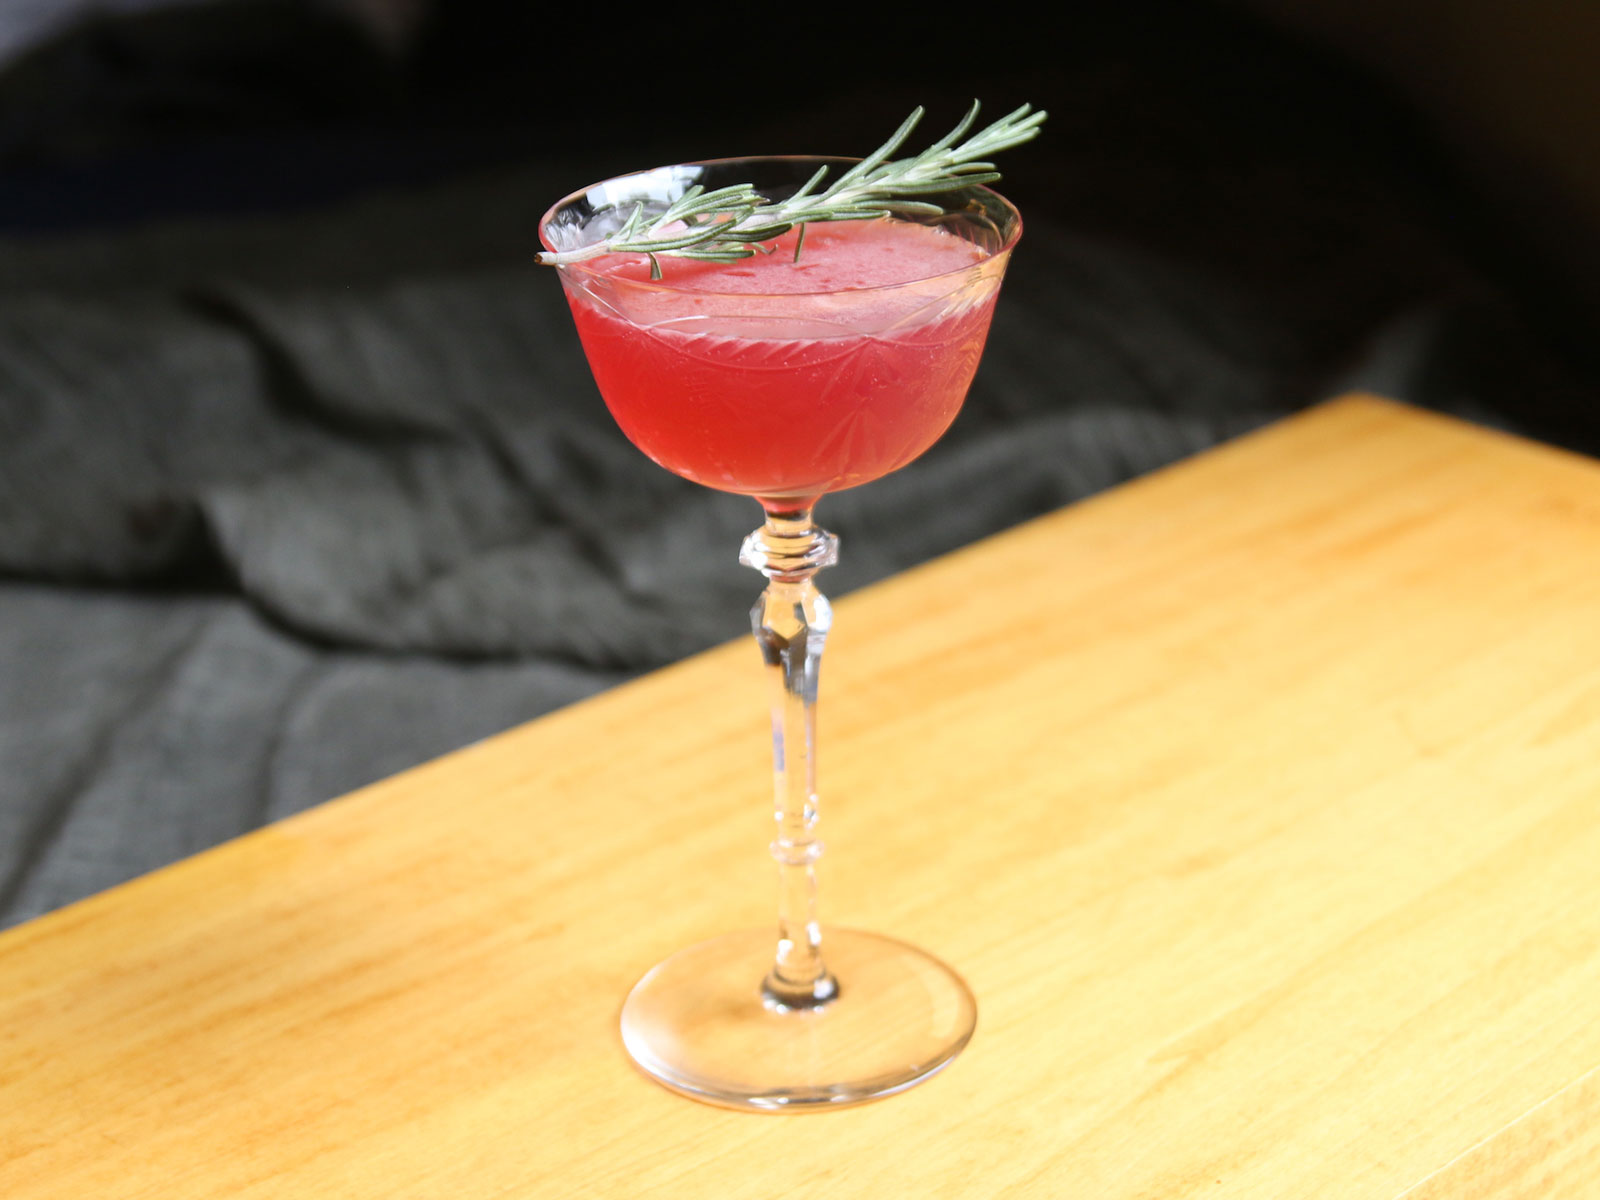 Rosemary-Cranberry Sour